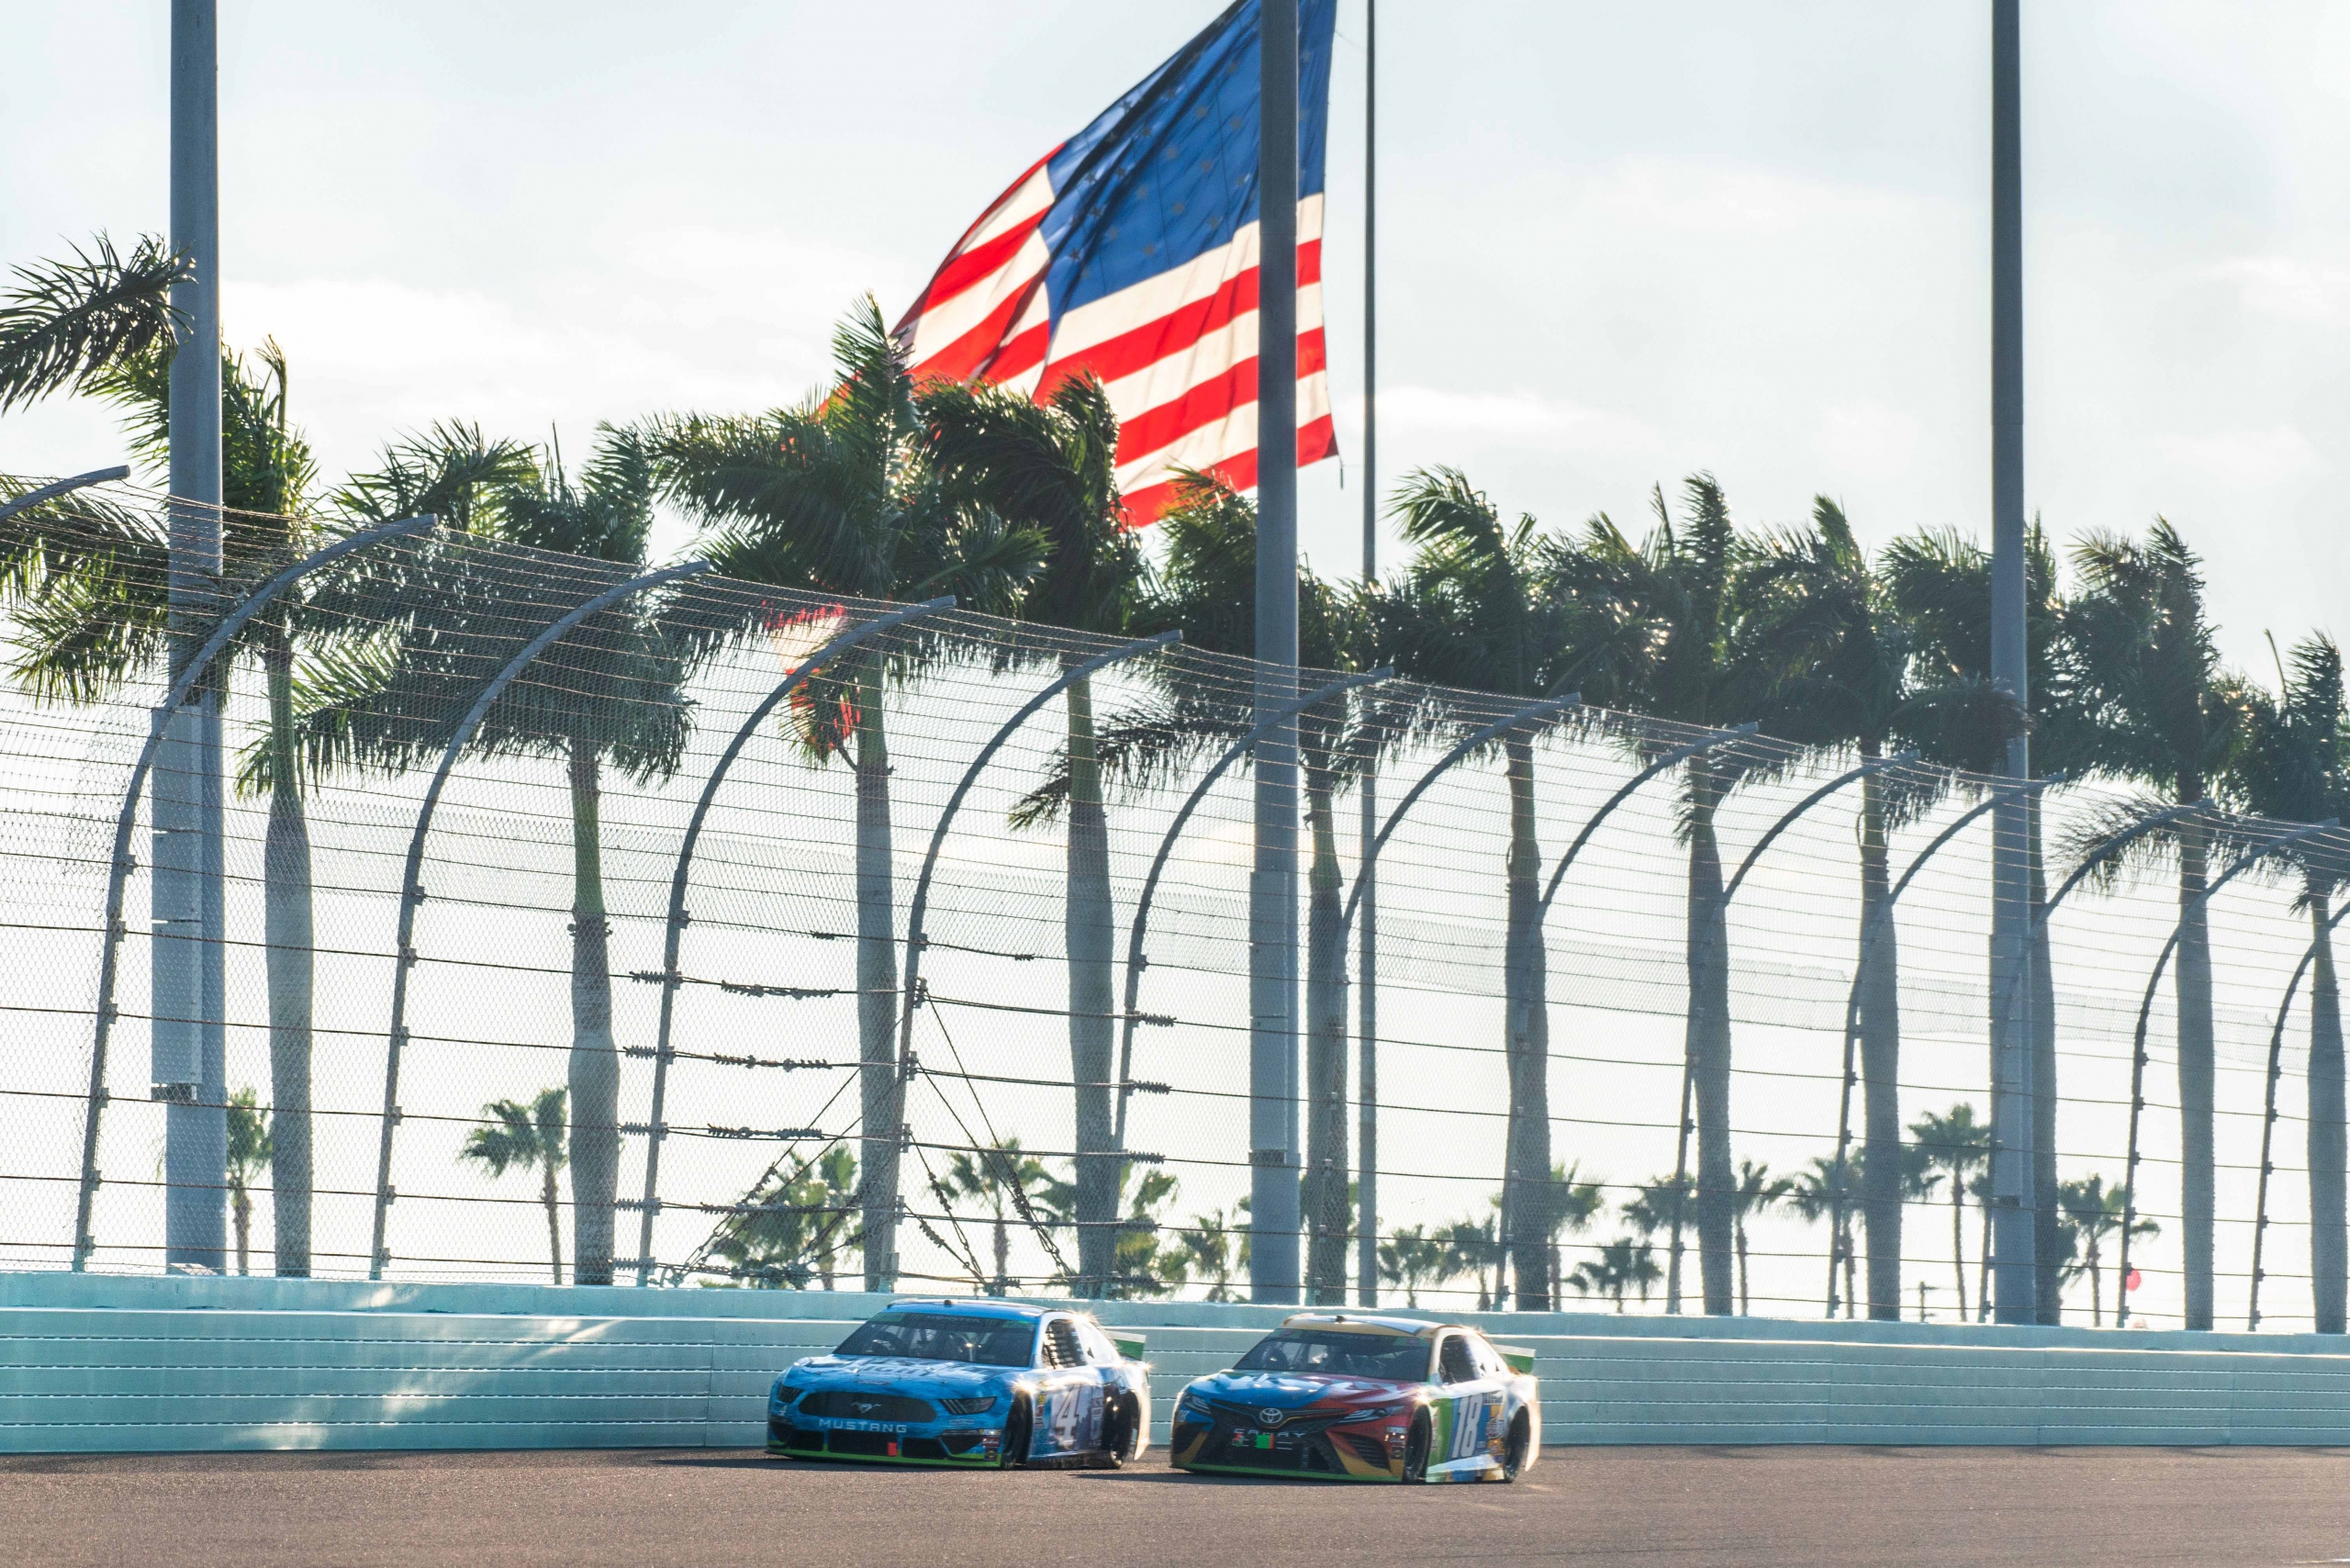 Kevin Harvick and Kyle Busch at Homestead-Miami Speedway - NASCAR